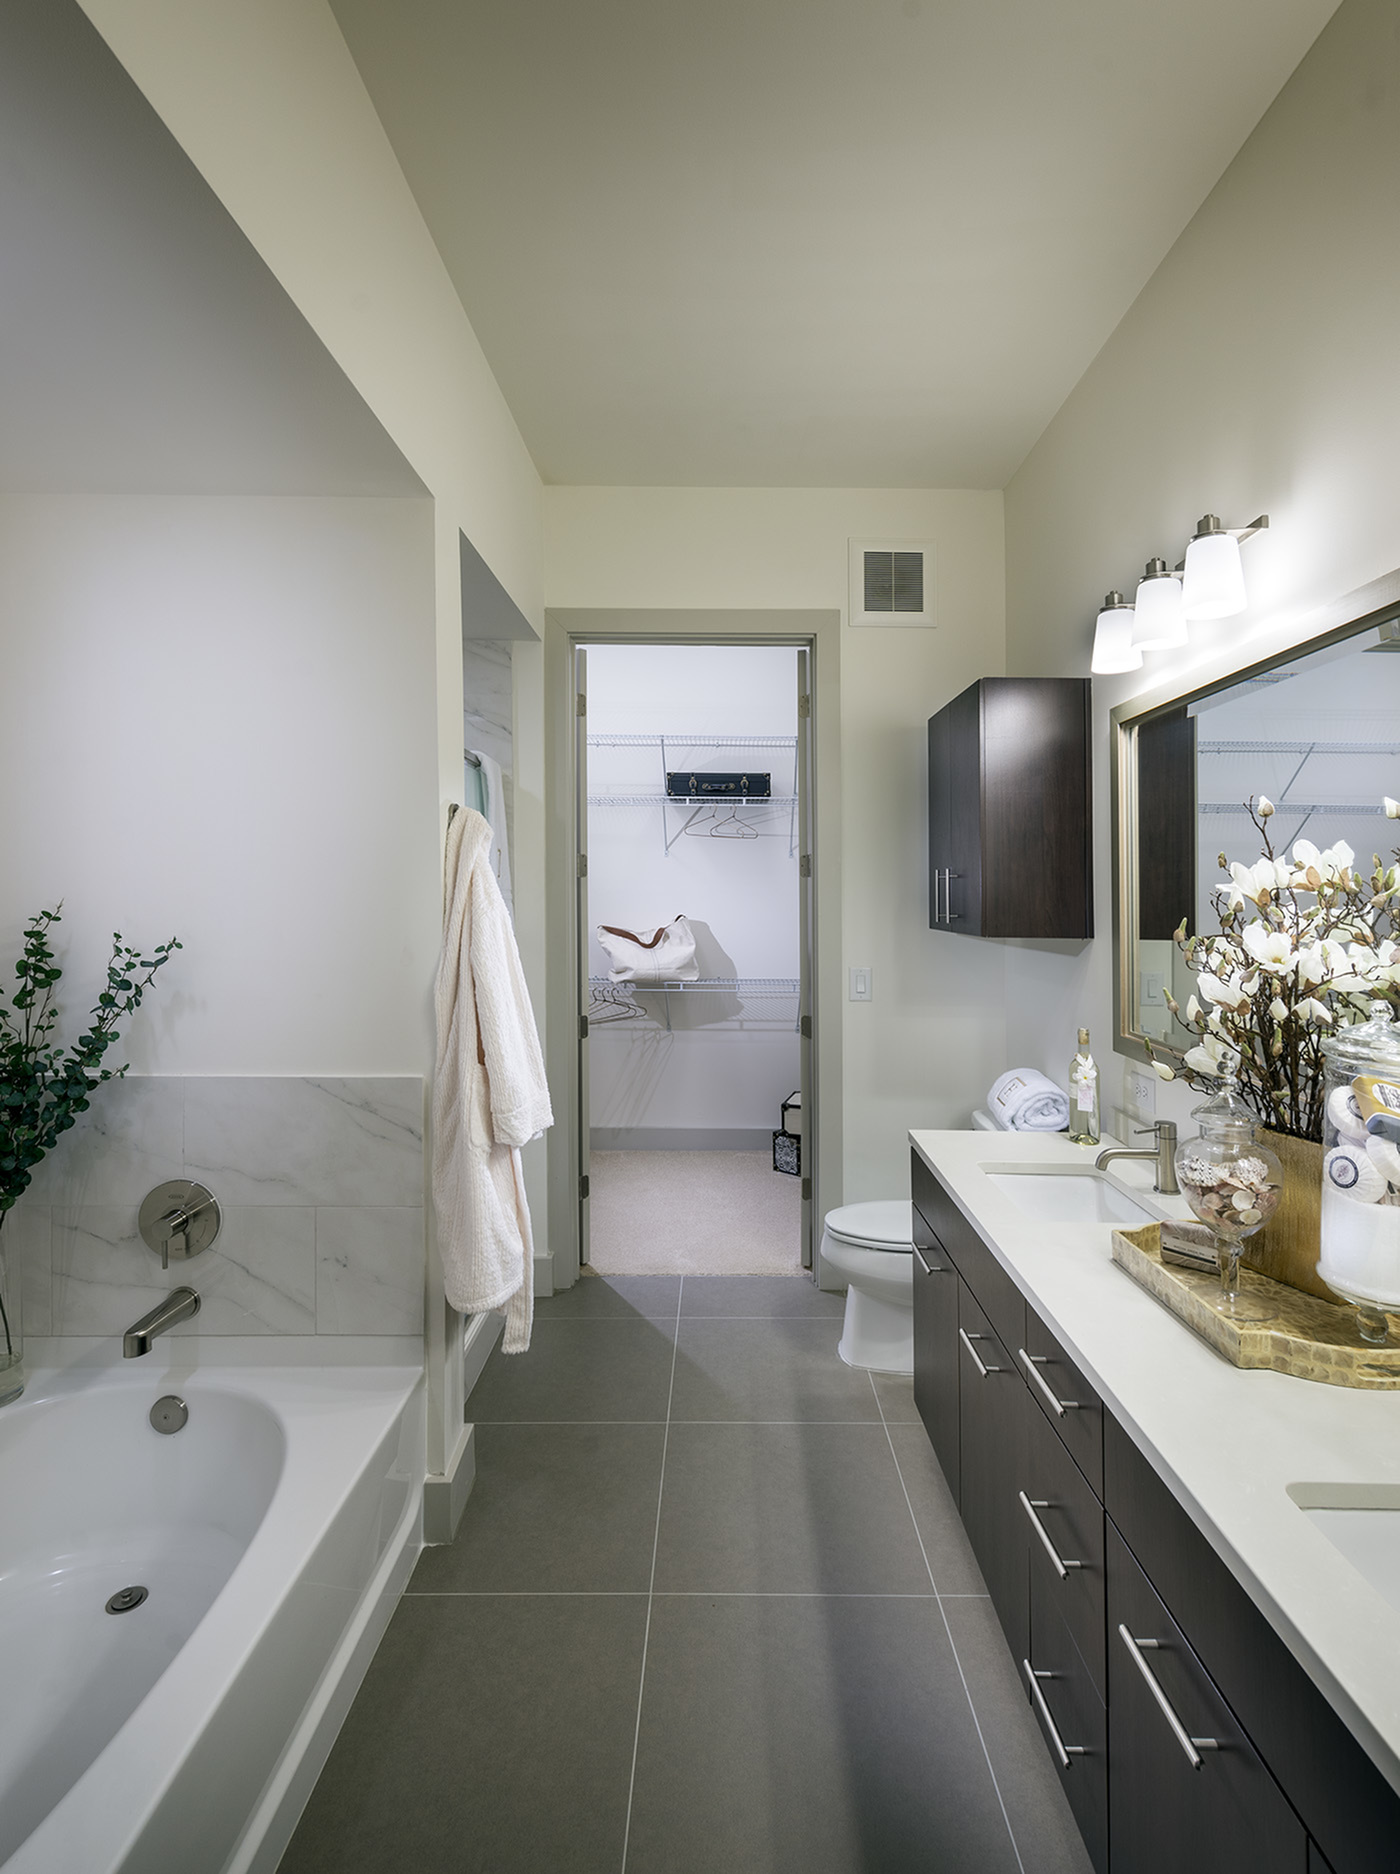 Image of Spa-inspired bathrooms with large soaking tubs* for Hanover West Peachtree